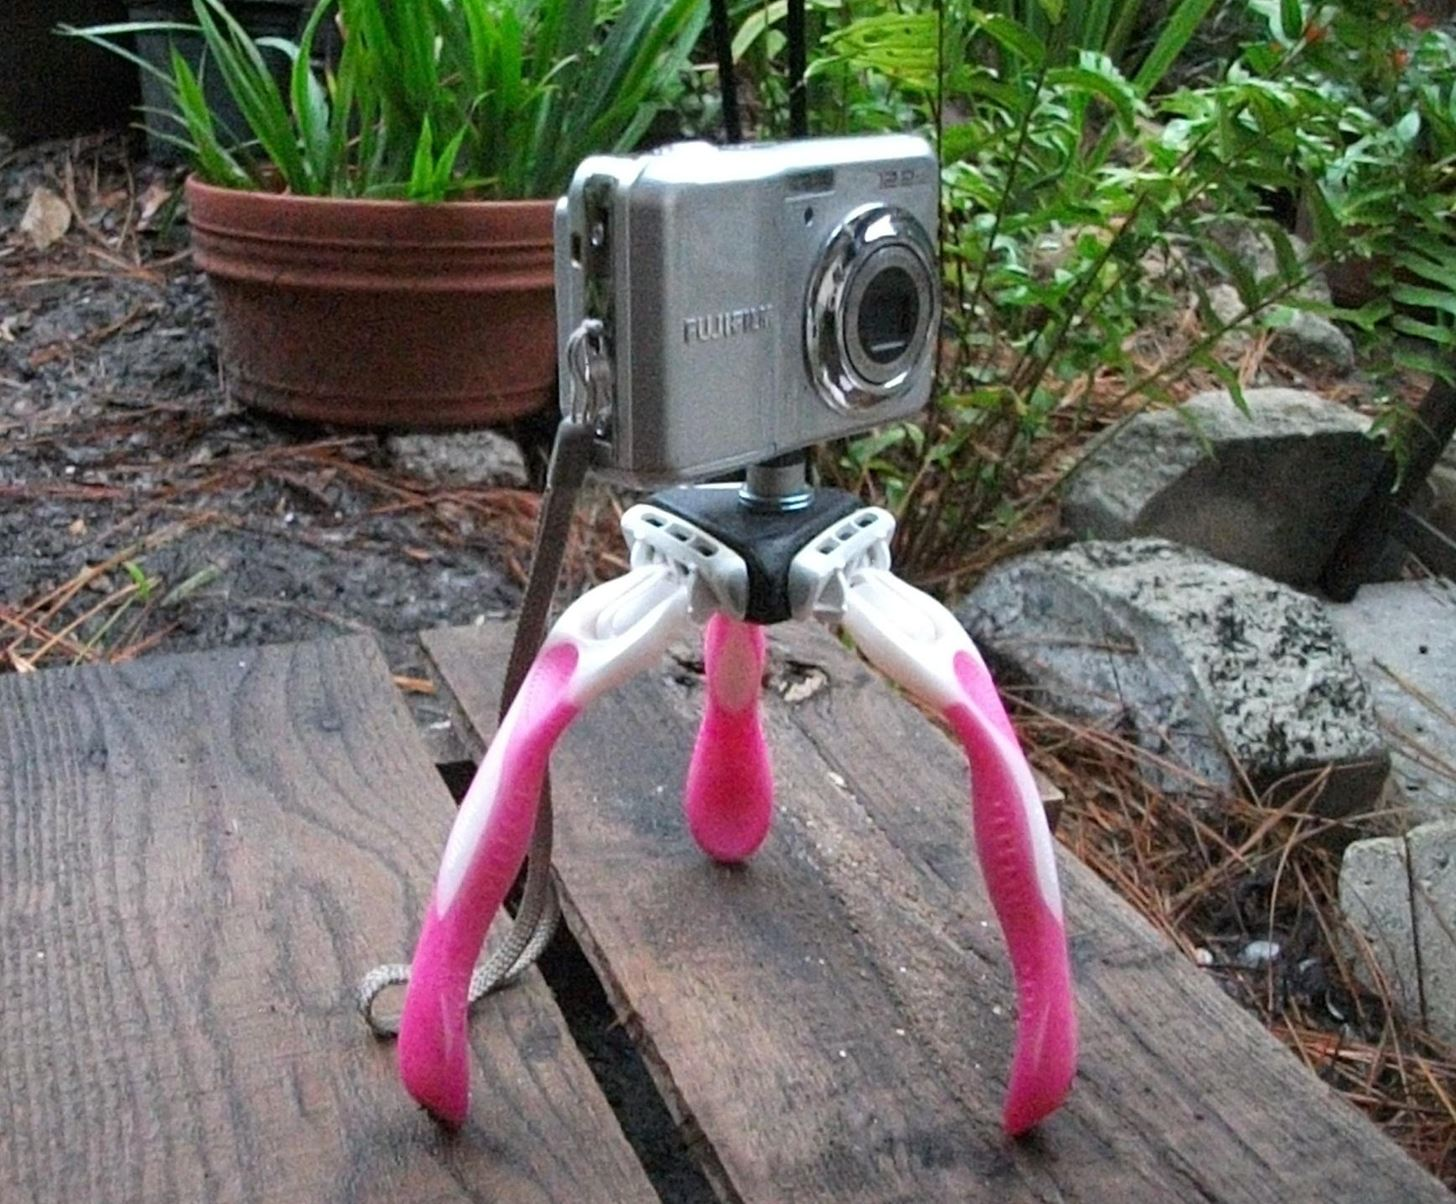 How to Make a Mini DIY Camera Tripod Using Old Disposable Razors